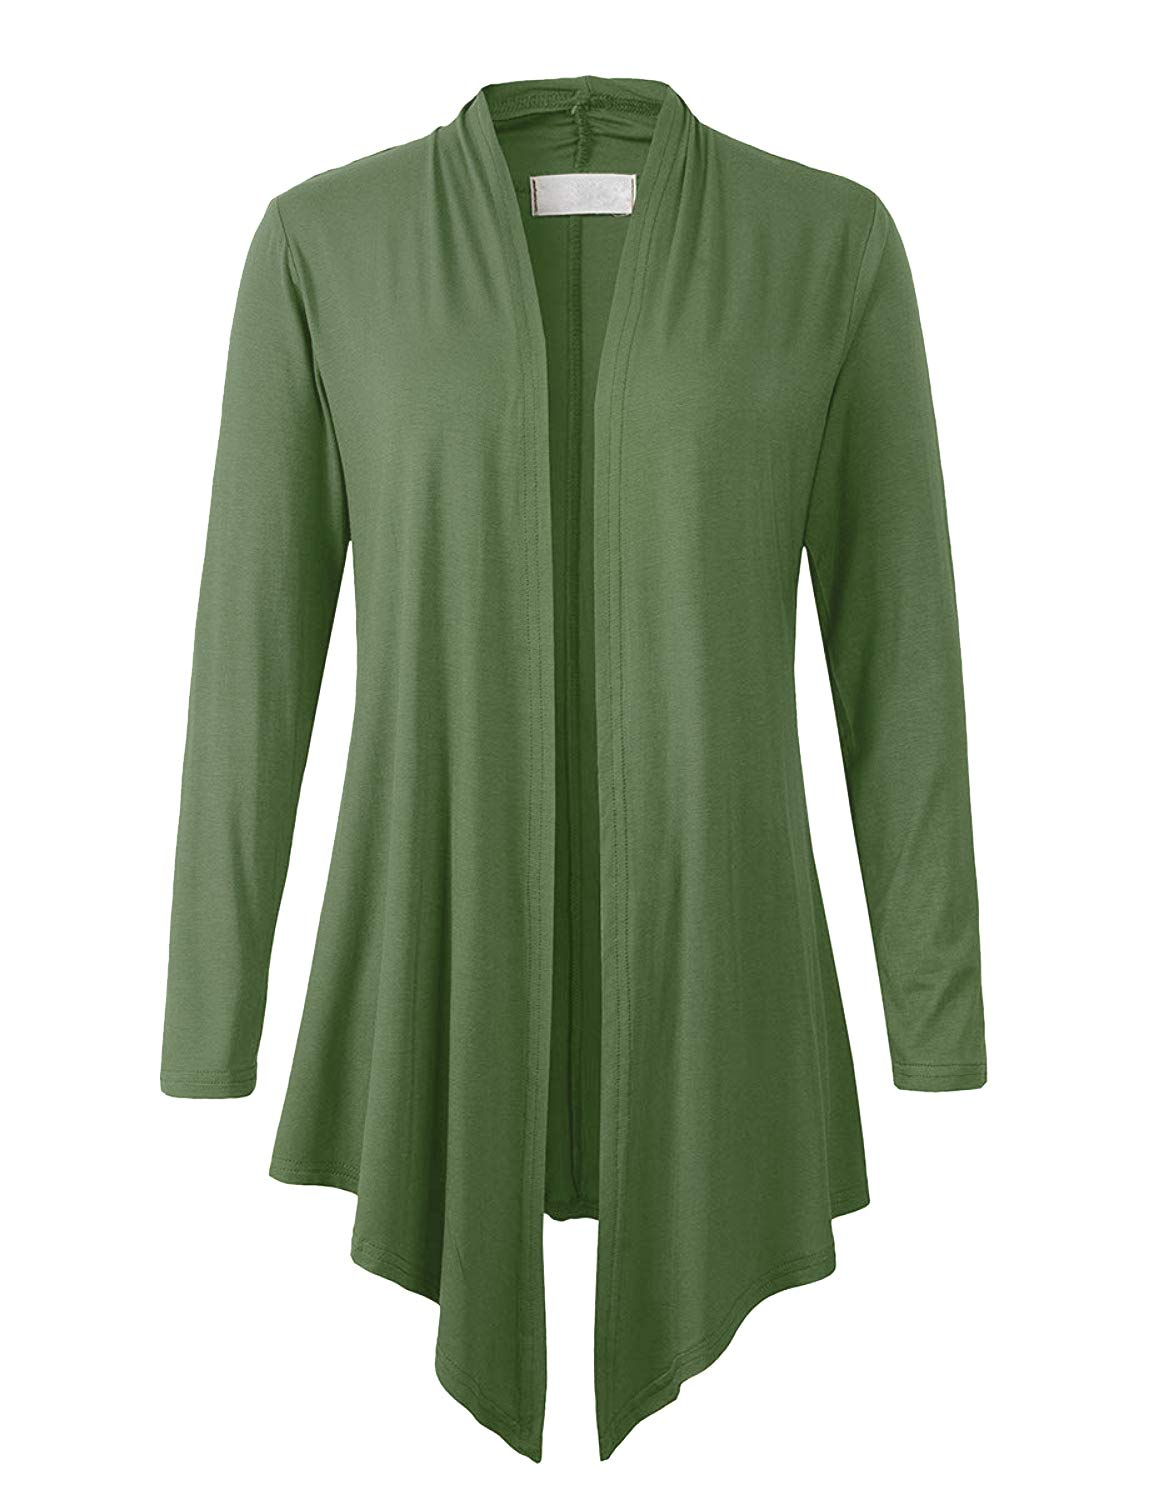 Eanklosco Women's Long Sleeve Drape Open-Front Cardigan Light Weight Irregular Hem Casual Tops (S, Army Green)